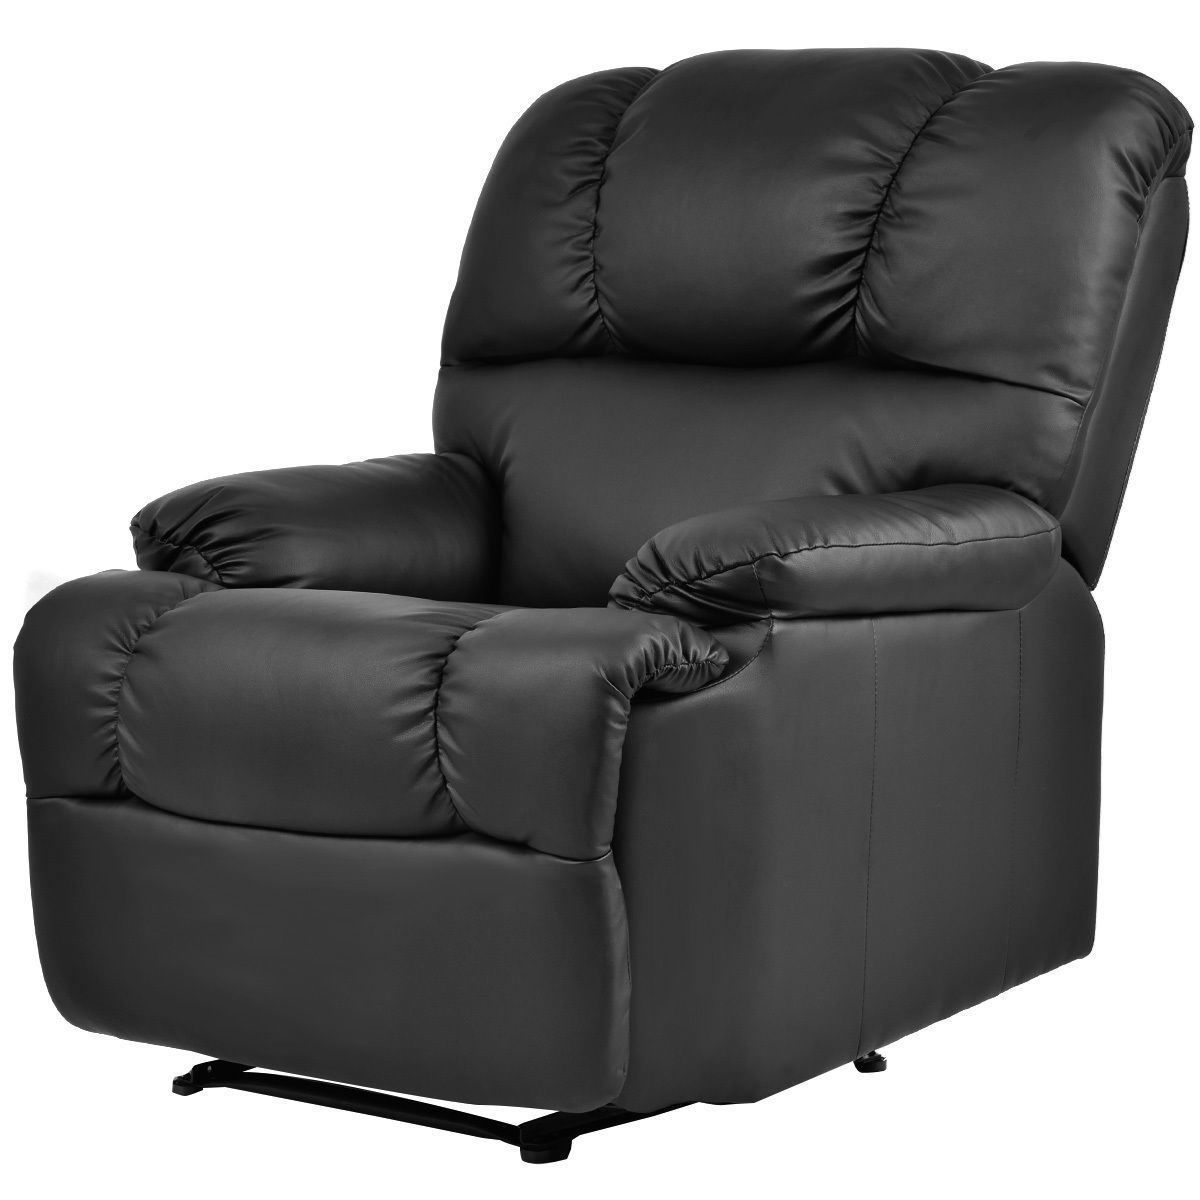 Picture of Recliner Heated Massage Chair With Control Black